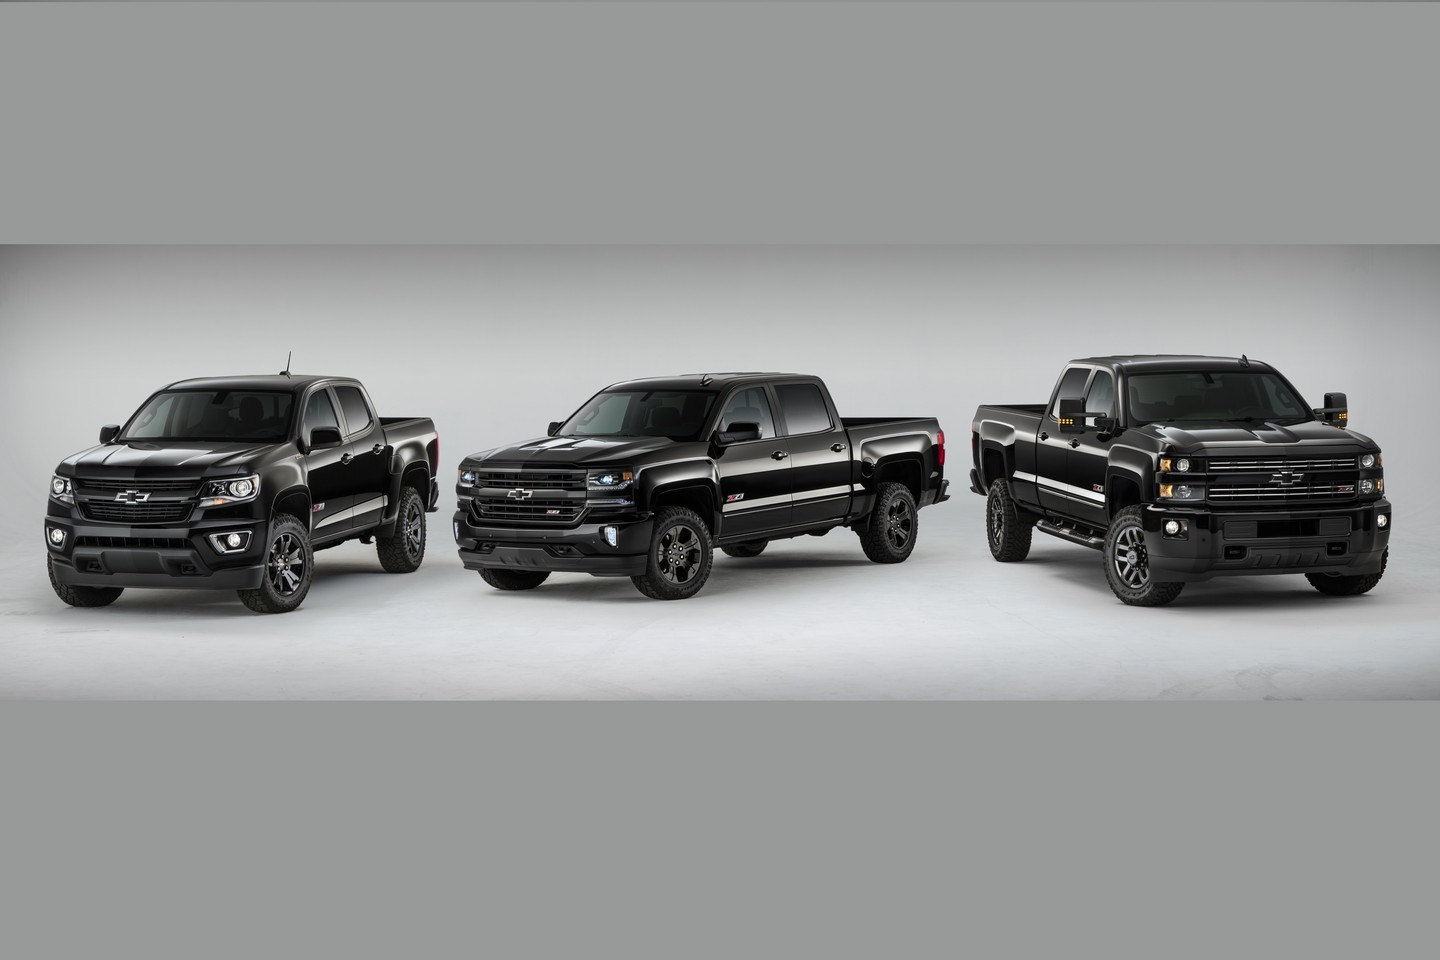 5 Photos 2016 Chevy Silverado And Colorado Midnight Edition